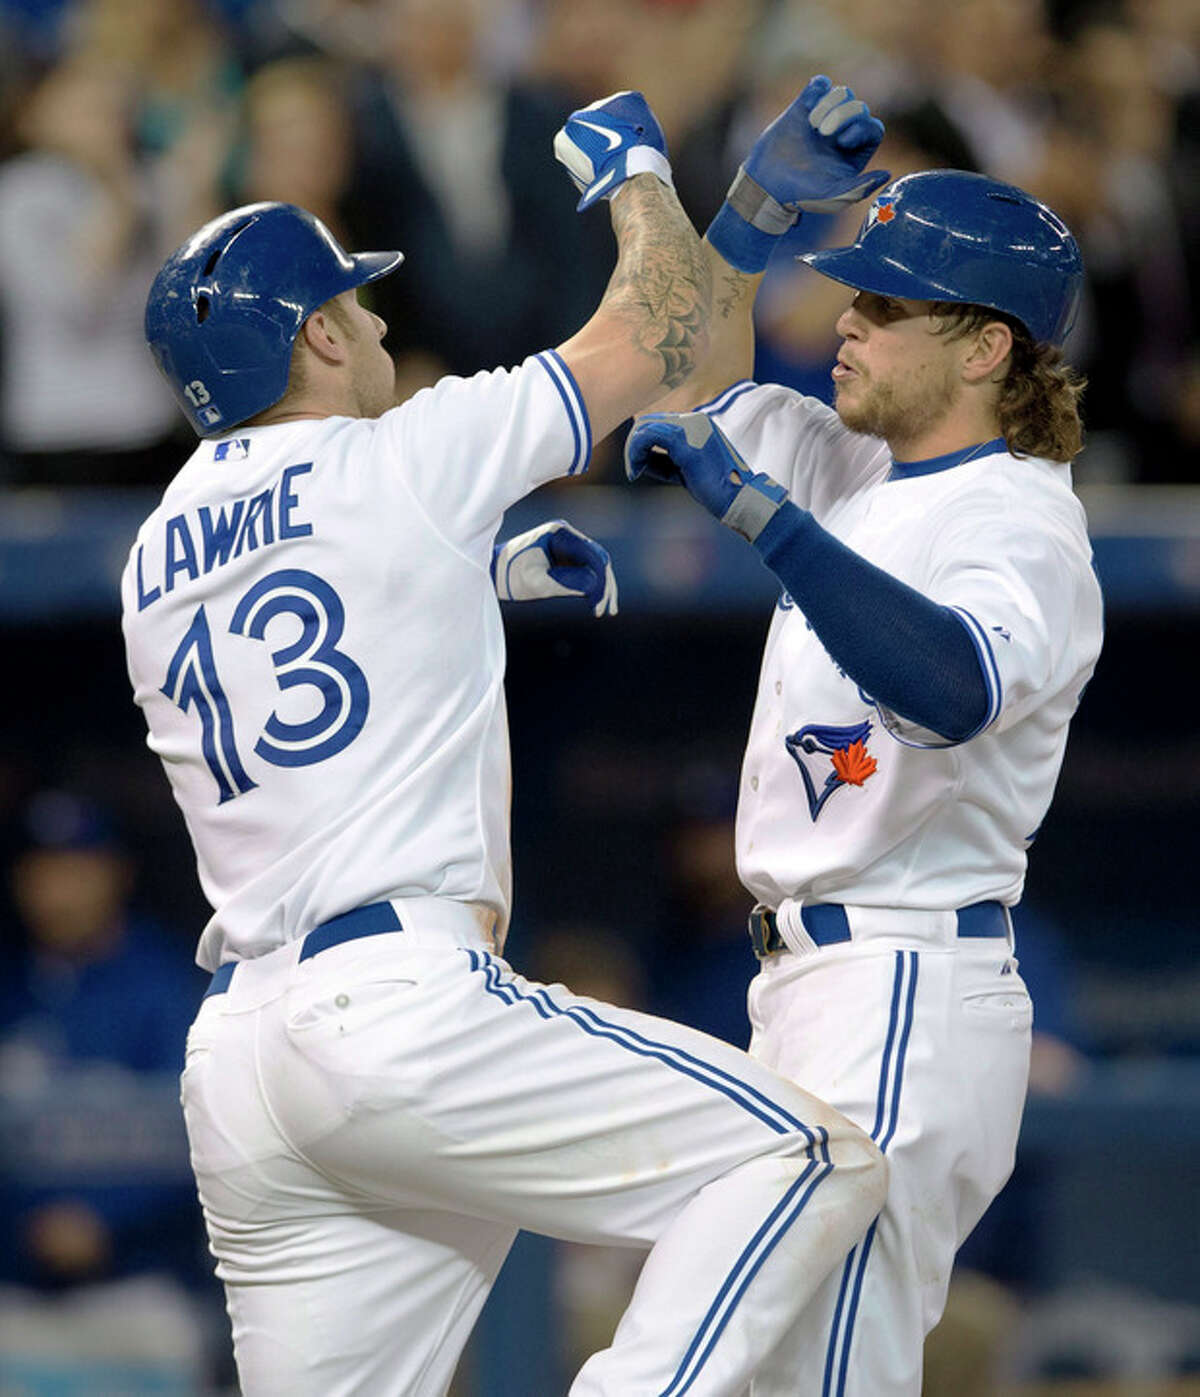 Toronto Blue Jays' Colby Rasmus, right, celebrates his two run home run against the New York Yankees with teammate Brett Lawrie during the fourth inning of MLB American League baseball action in Toronto Wednesday, Sept. 18, 2013. (AP Photo/The Canadian Press, Mark Blinch)